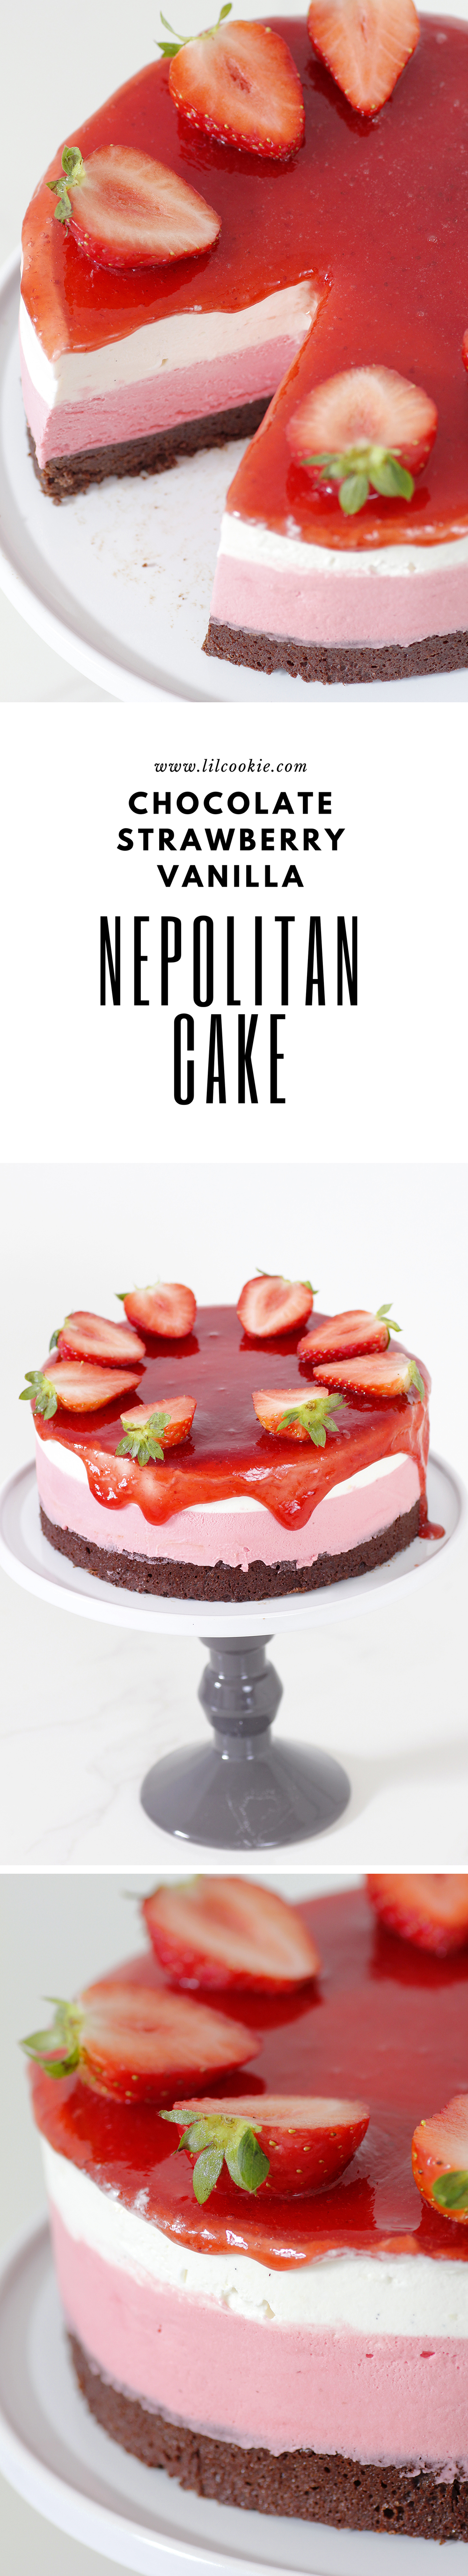 Nepolitan Mousse Cake #Chocolate #Cake #Strawberry #Whitechocolate #glutenfree #valentinesday #christmas